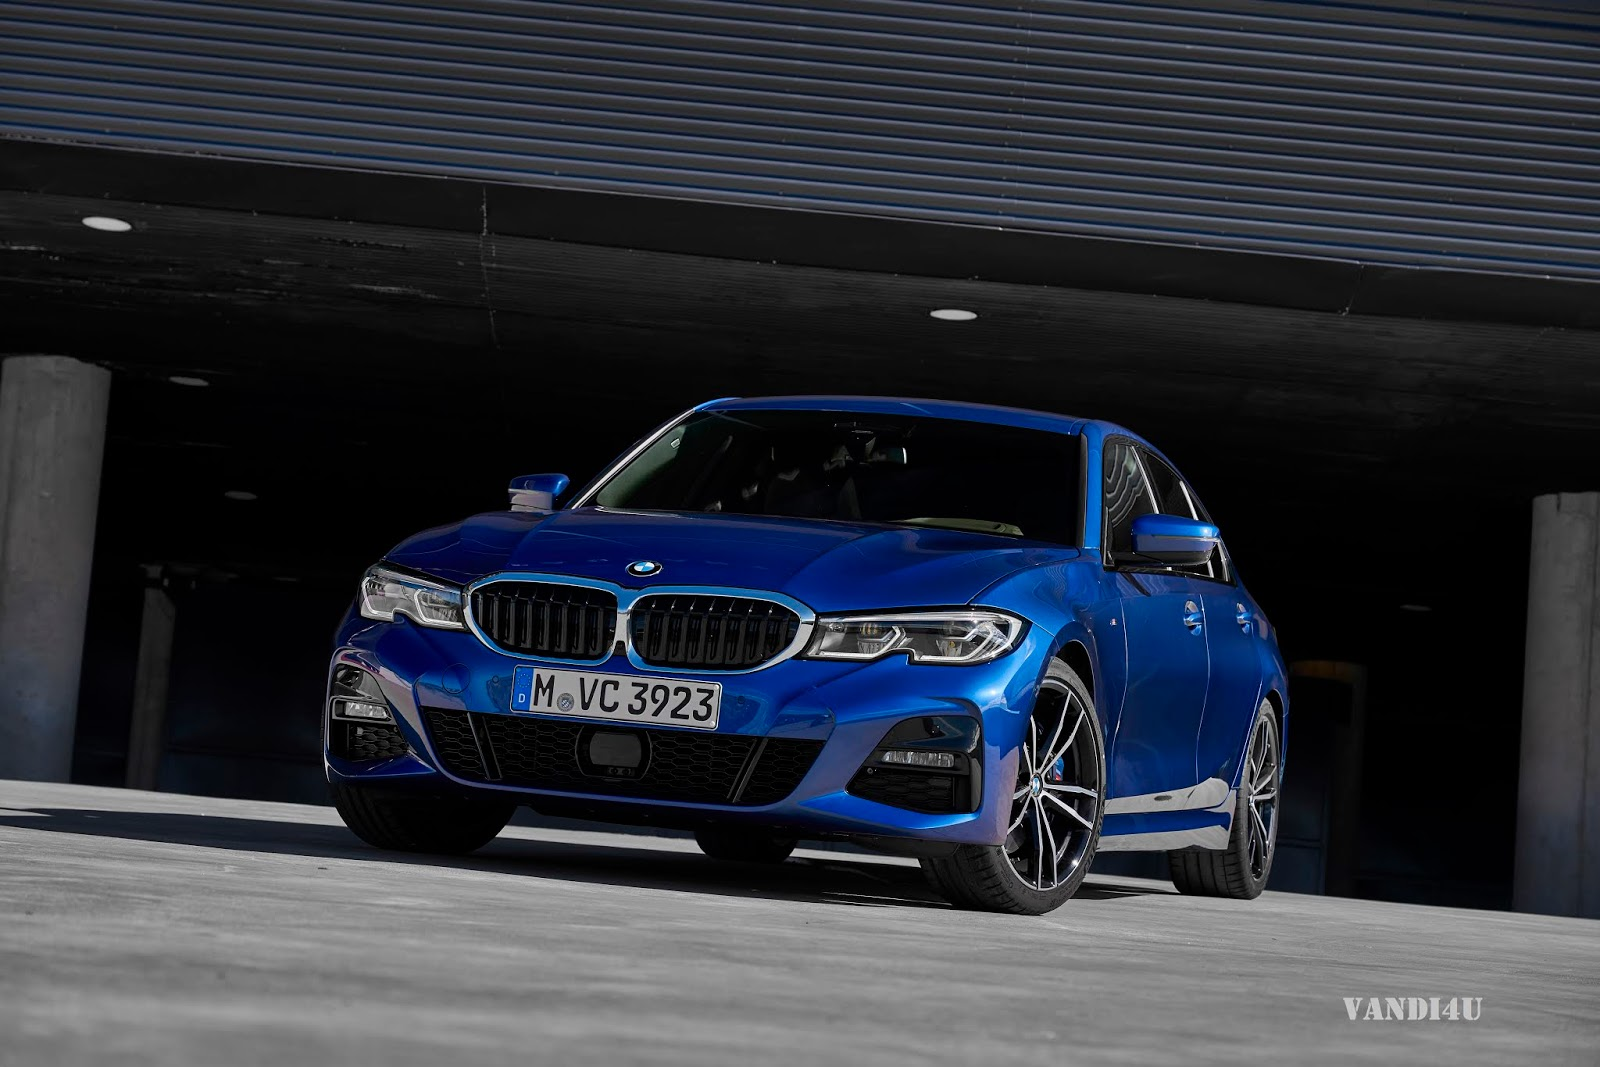 All New BMW 3 Series Launched In India At Rs. 41.40 Lakhs   VANDI4U